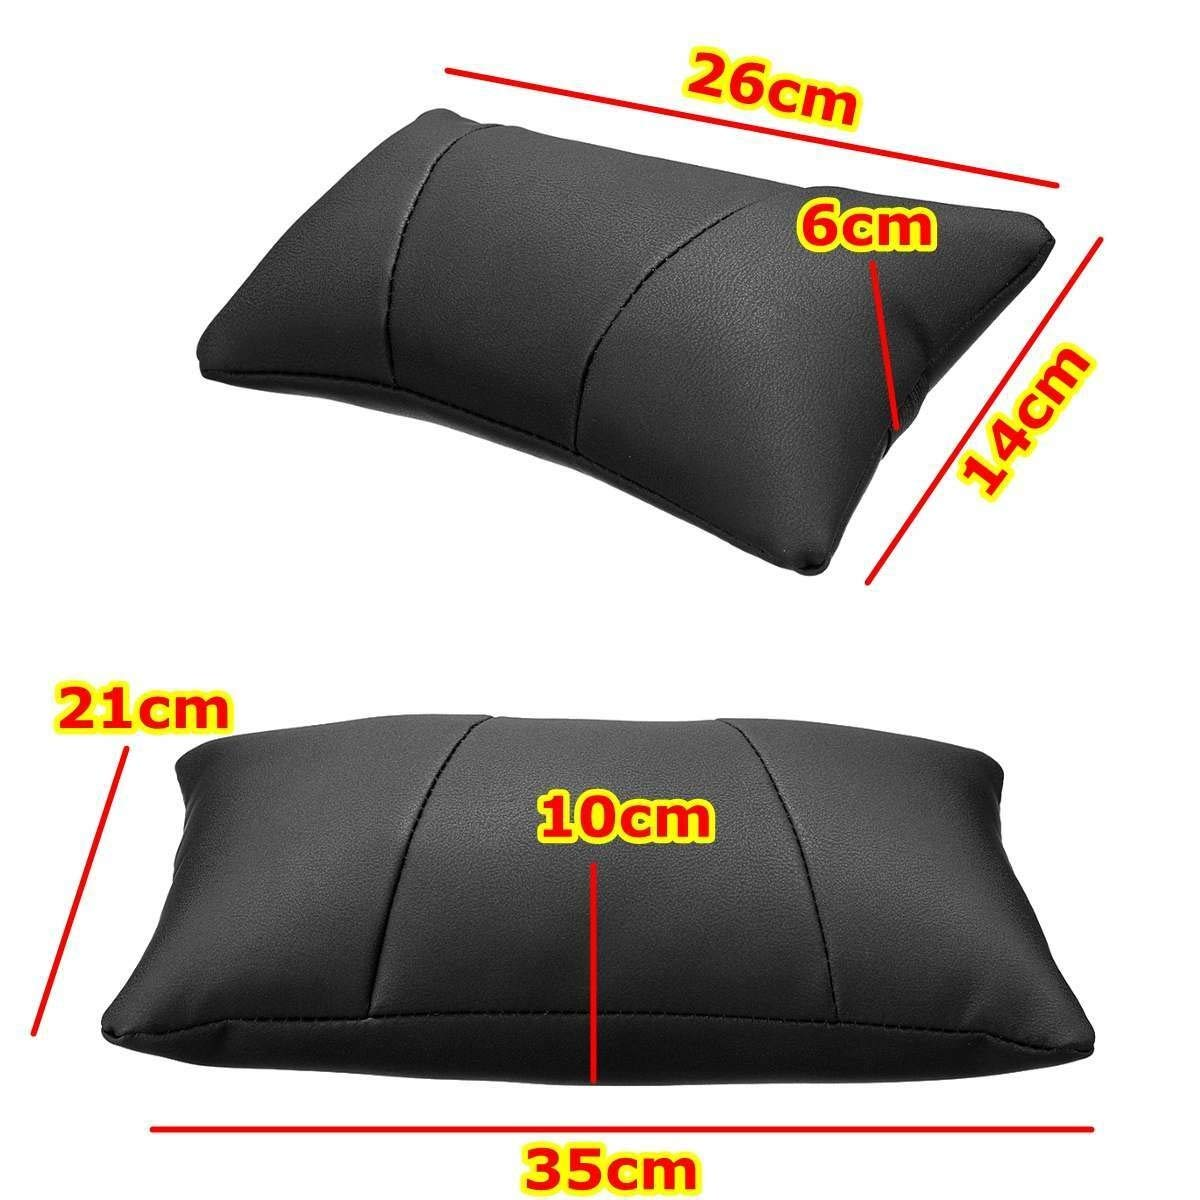 Noth-Too Soft Leather Car Neck Back Seat Pillow Lumbar Support Massager Waist Cushion Pillow for Chairs Seat Relieve Pain Luxury Sponge Mats (Color Name : Coffee 2pcs) by Noth-Too